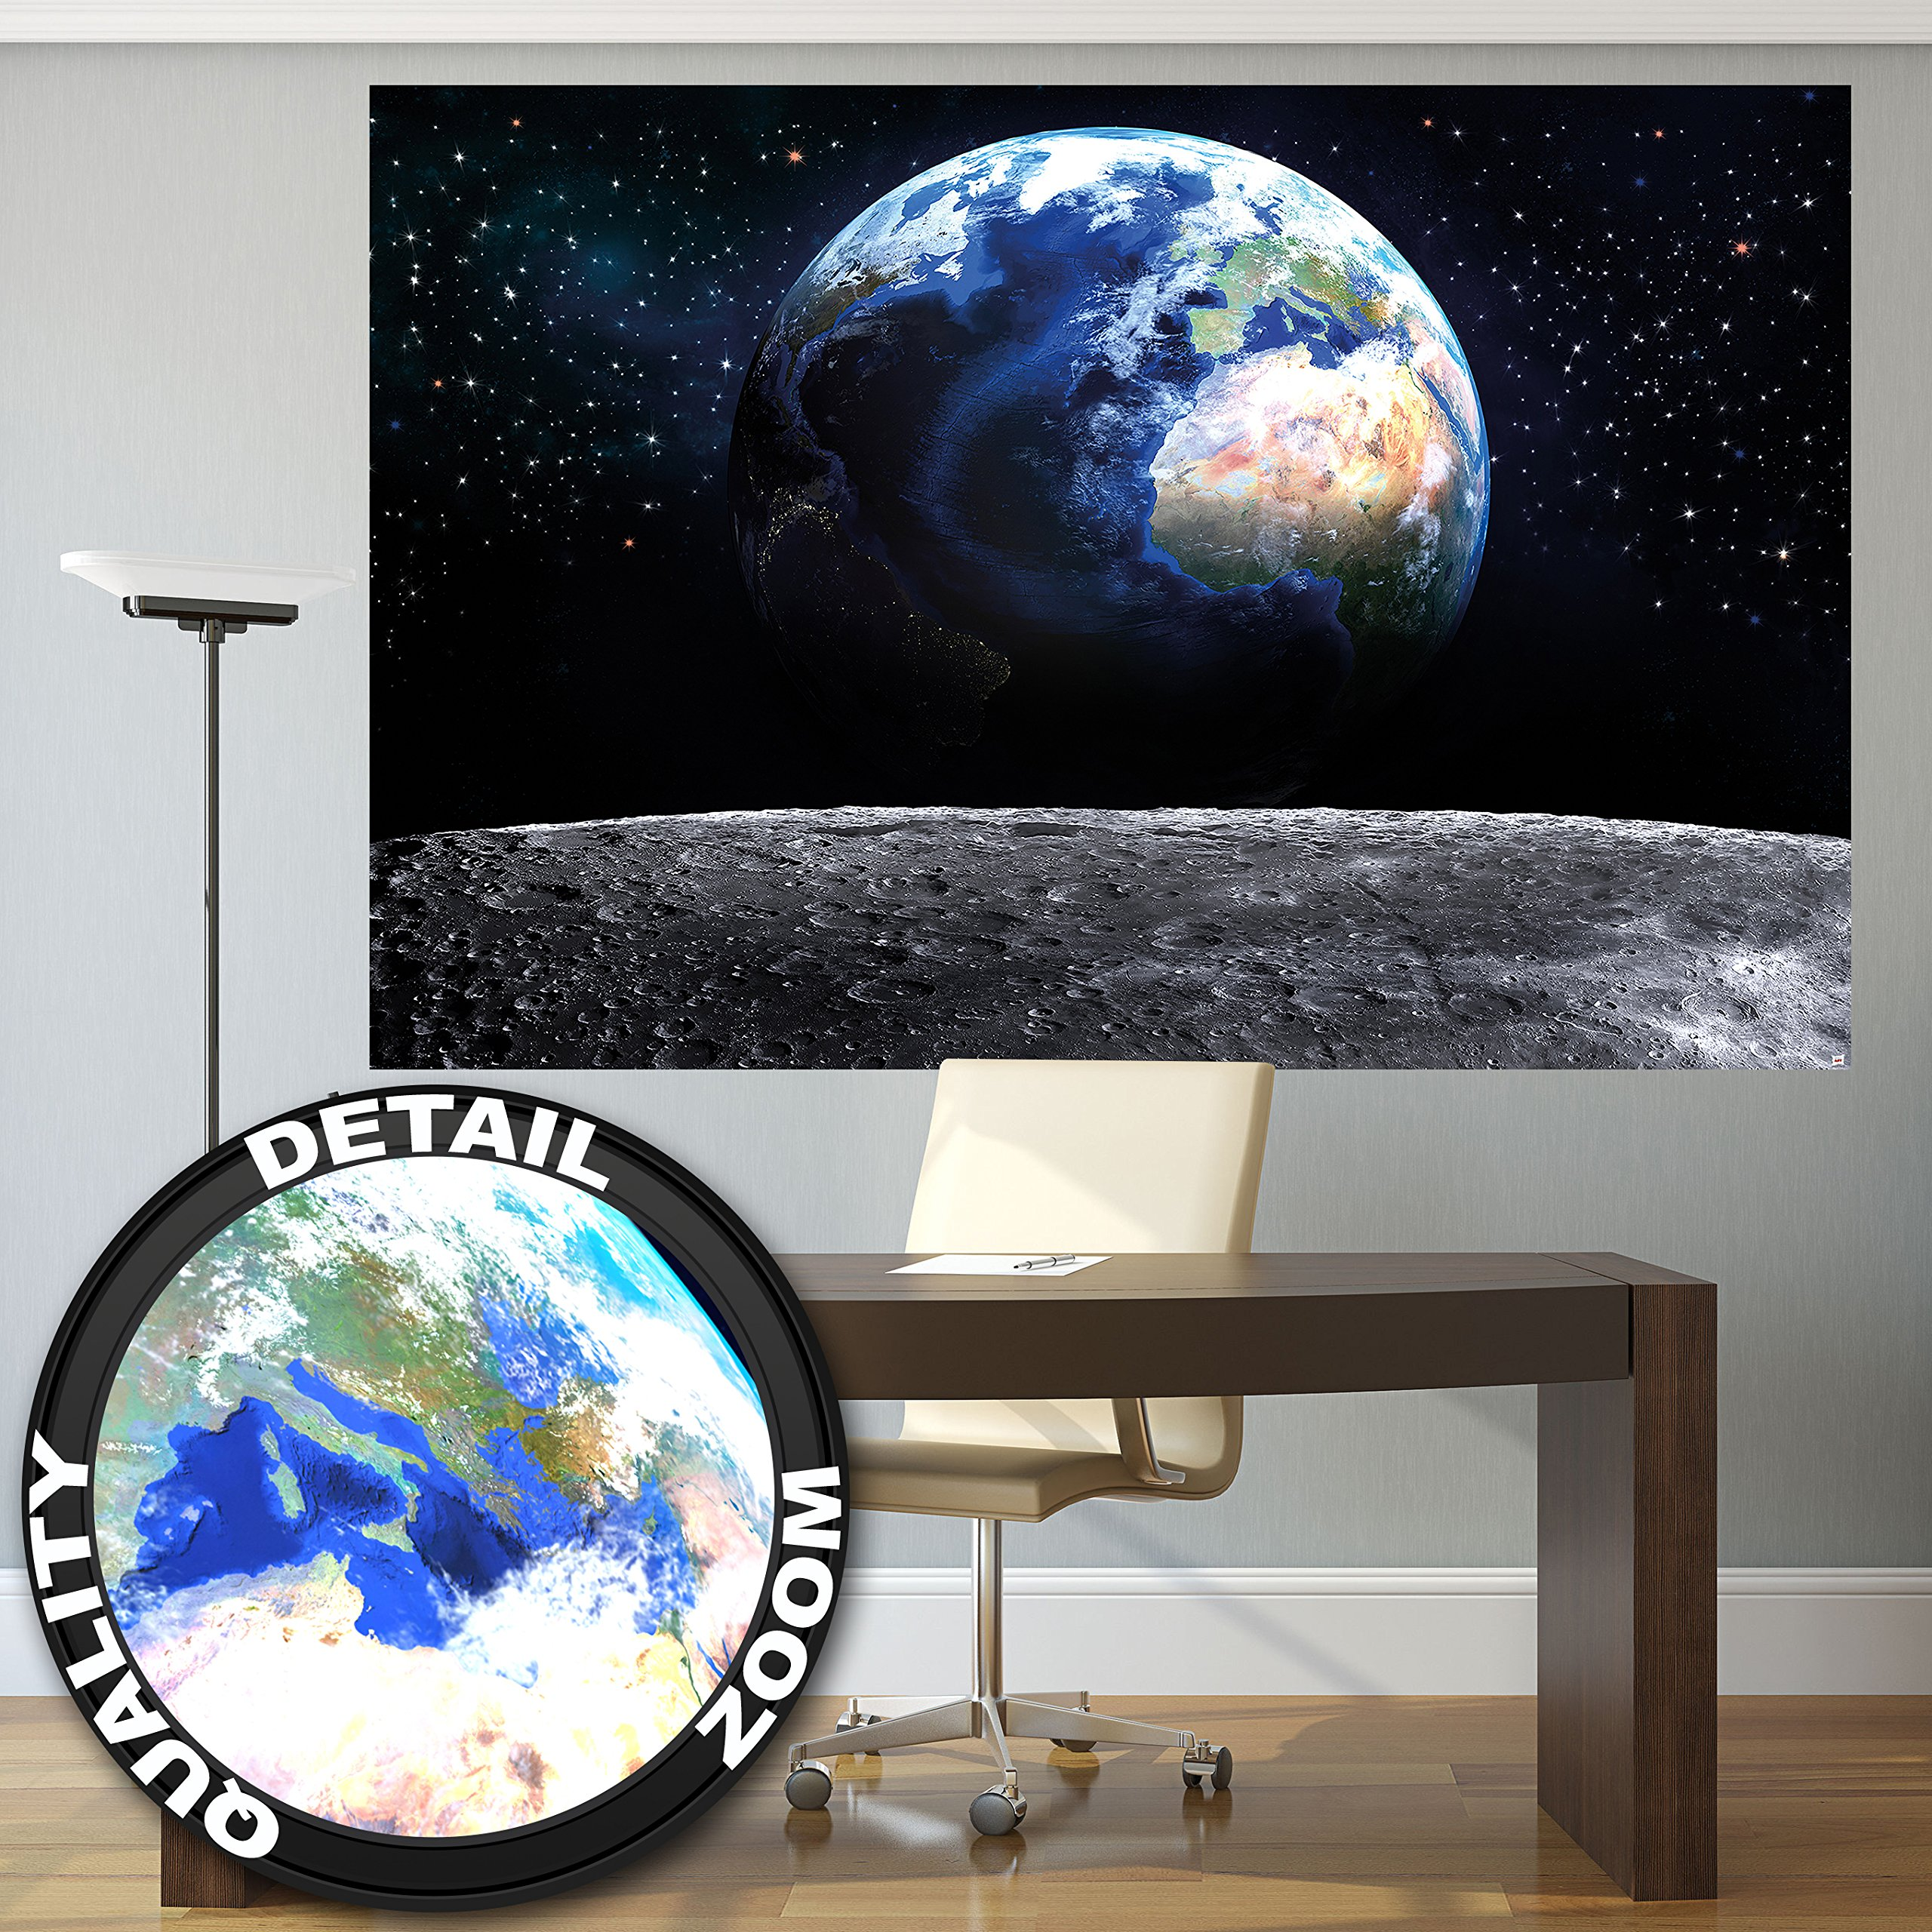 Wall Mural Planet Earth Mural Decoration World Earth Moon Galaxy Universe Deep Space Cosmos Space Globe Stars Moon Outer Space I paperhanging Wallpaper poster wall decor by GREAT ART 82.7 x 55 Inch